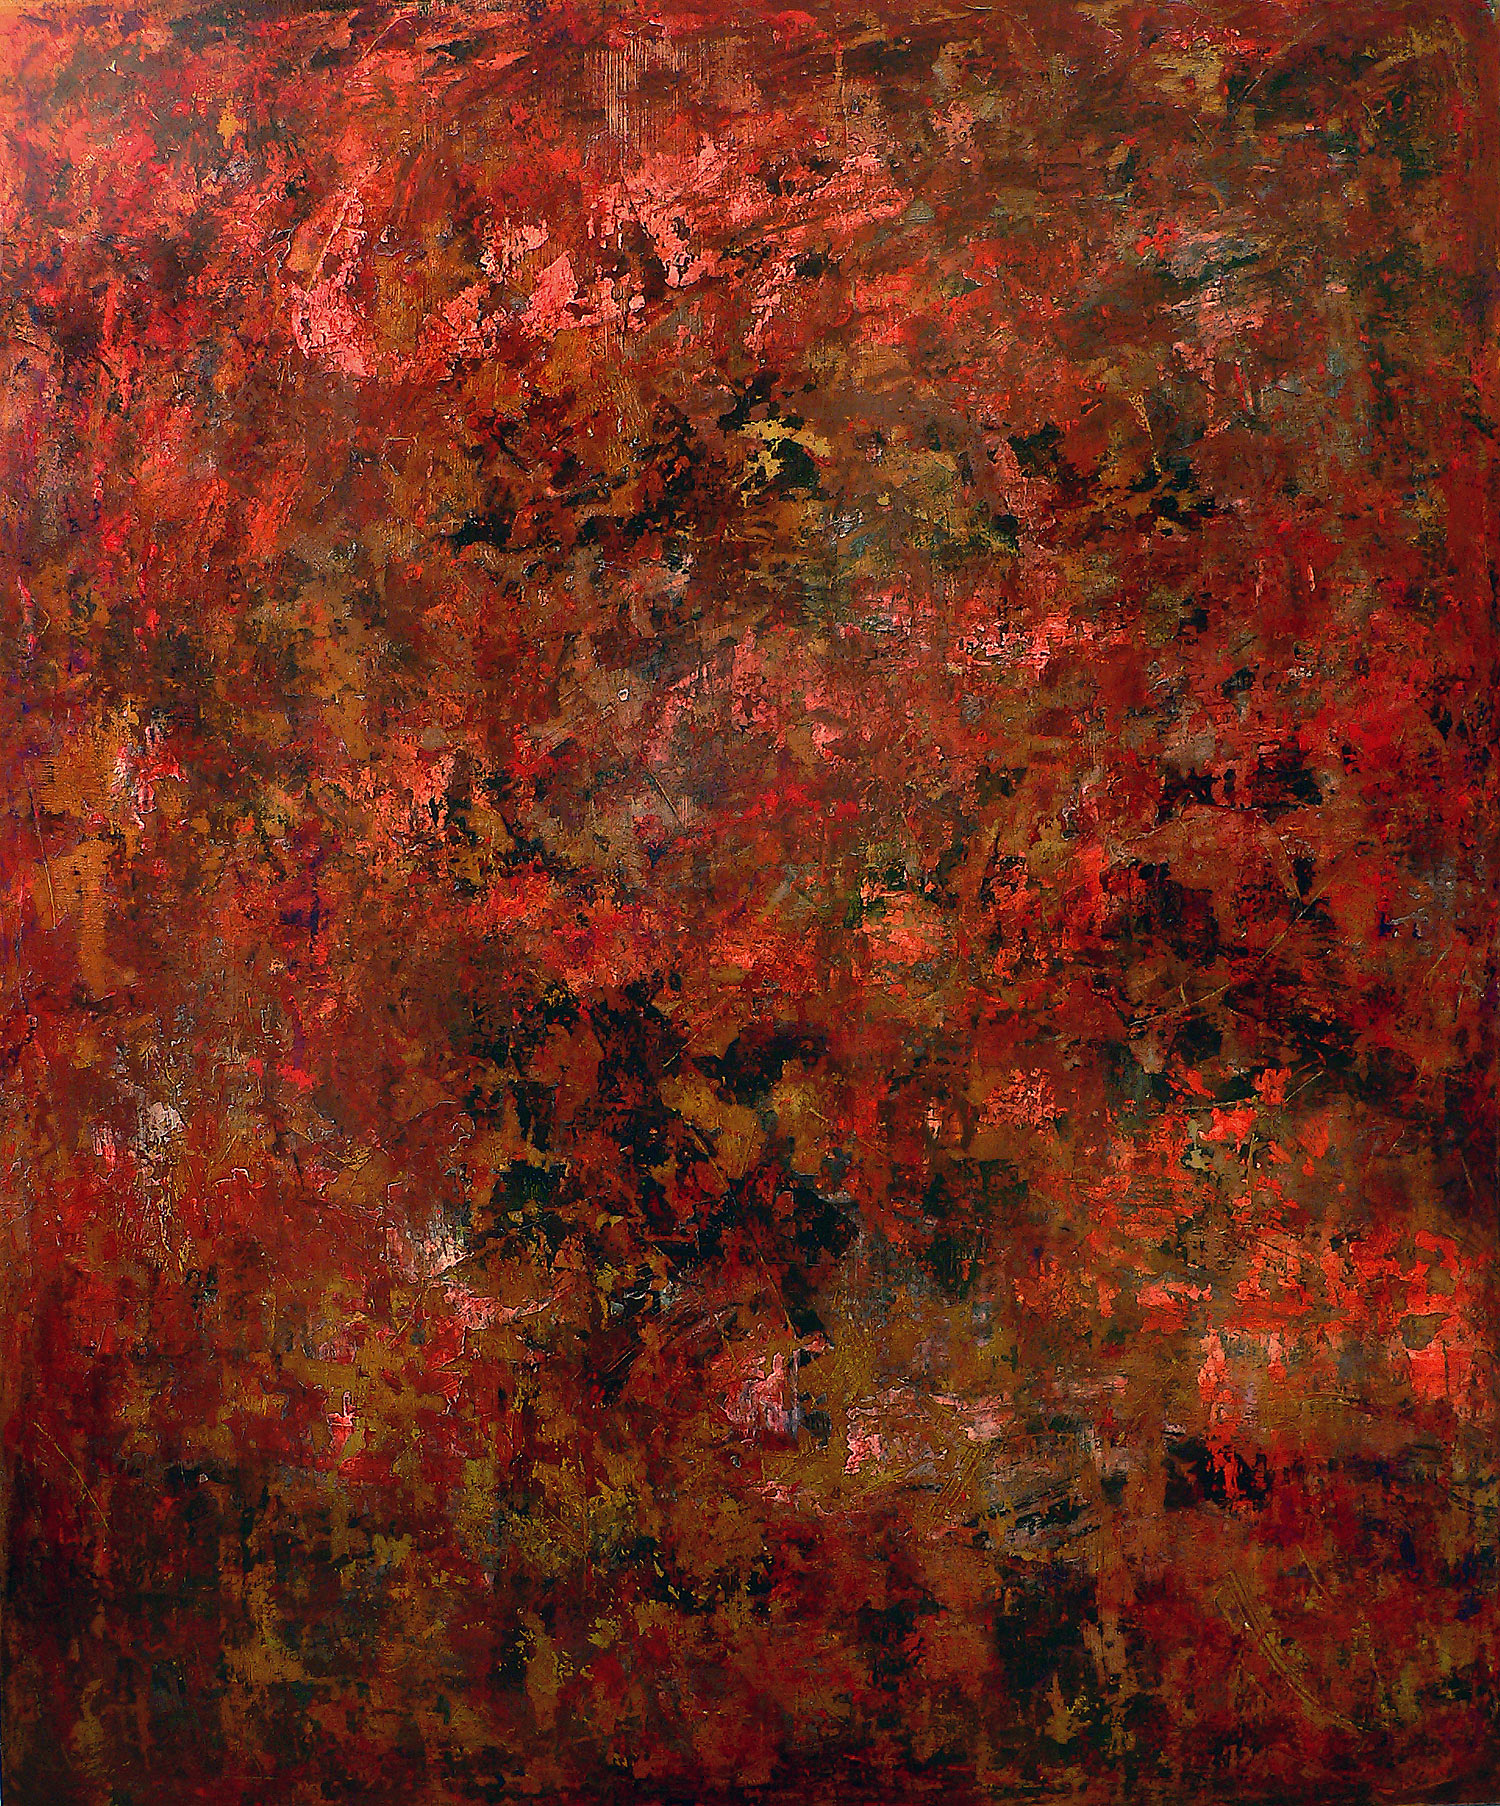 autumn in new york - 120 x 100 cm - acrylic on canvas - 2008